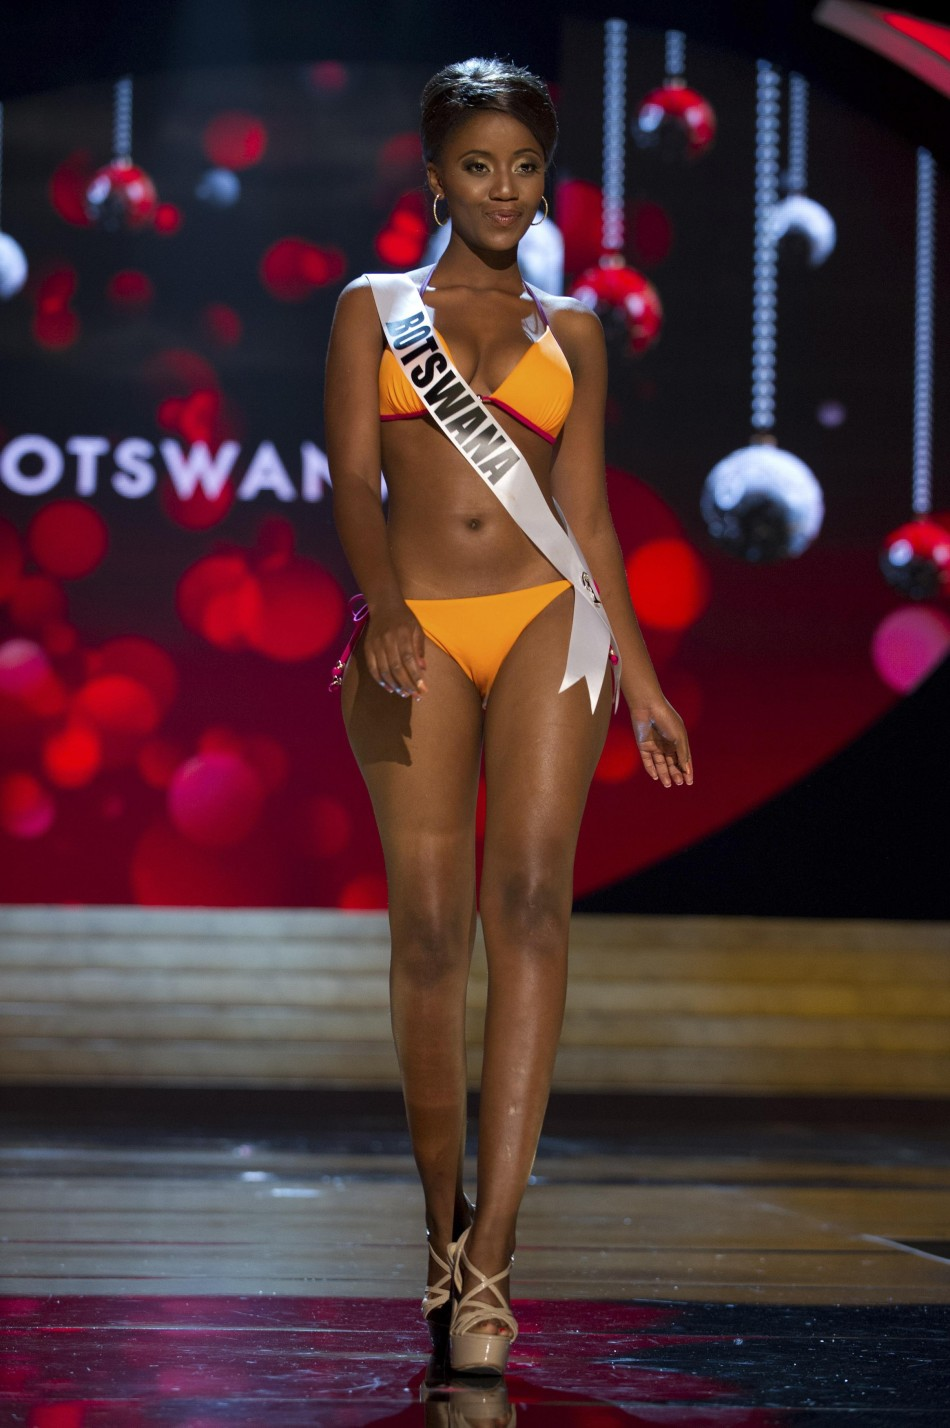 Miss Botswana Sheillah Molelekwa at the Swimsuit Competition of the 2012 Miss Universe Presentation Show at PH Live in Las Vegas